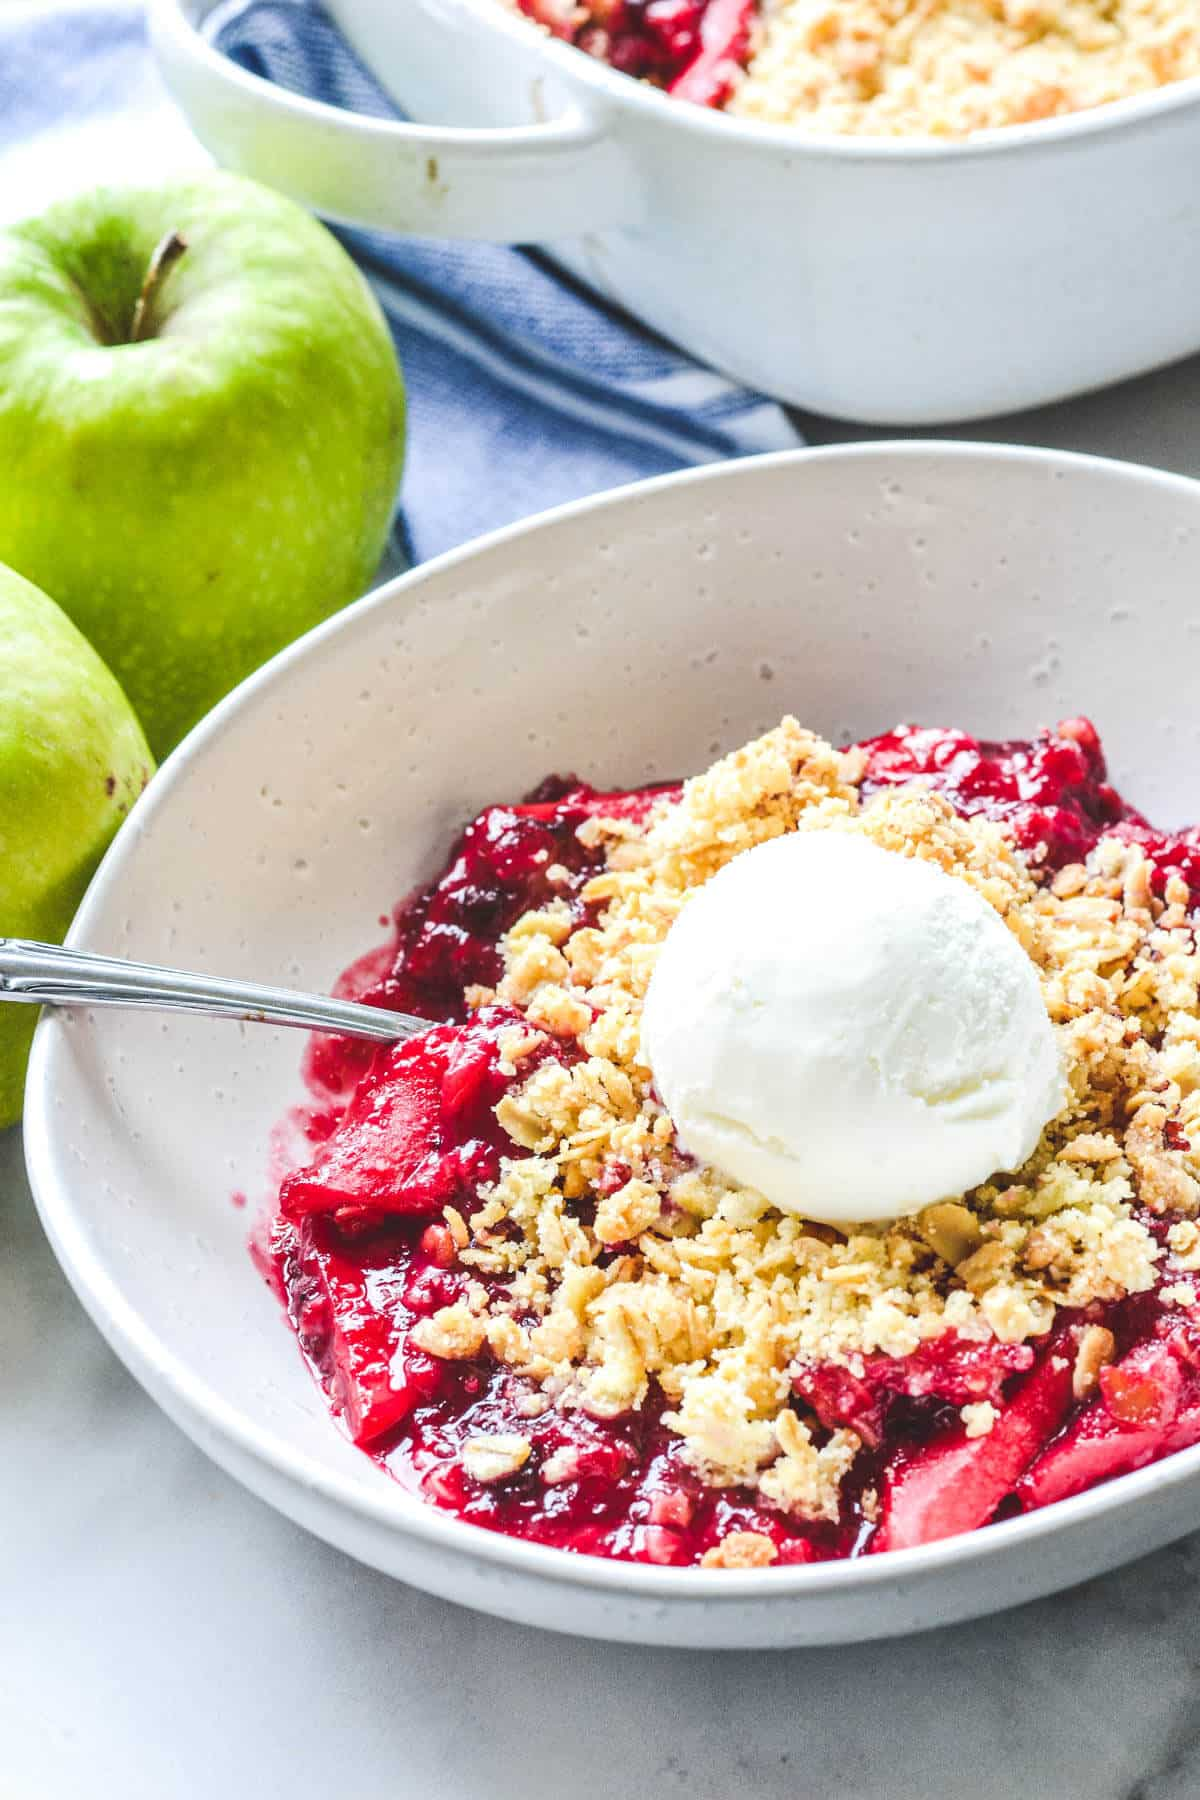 a white bowl containing apple and blackberry crumble and a scoop of ice cream with apples in the background